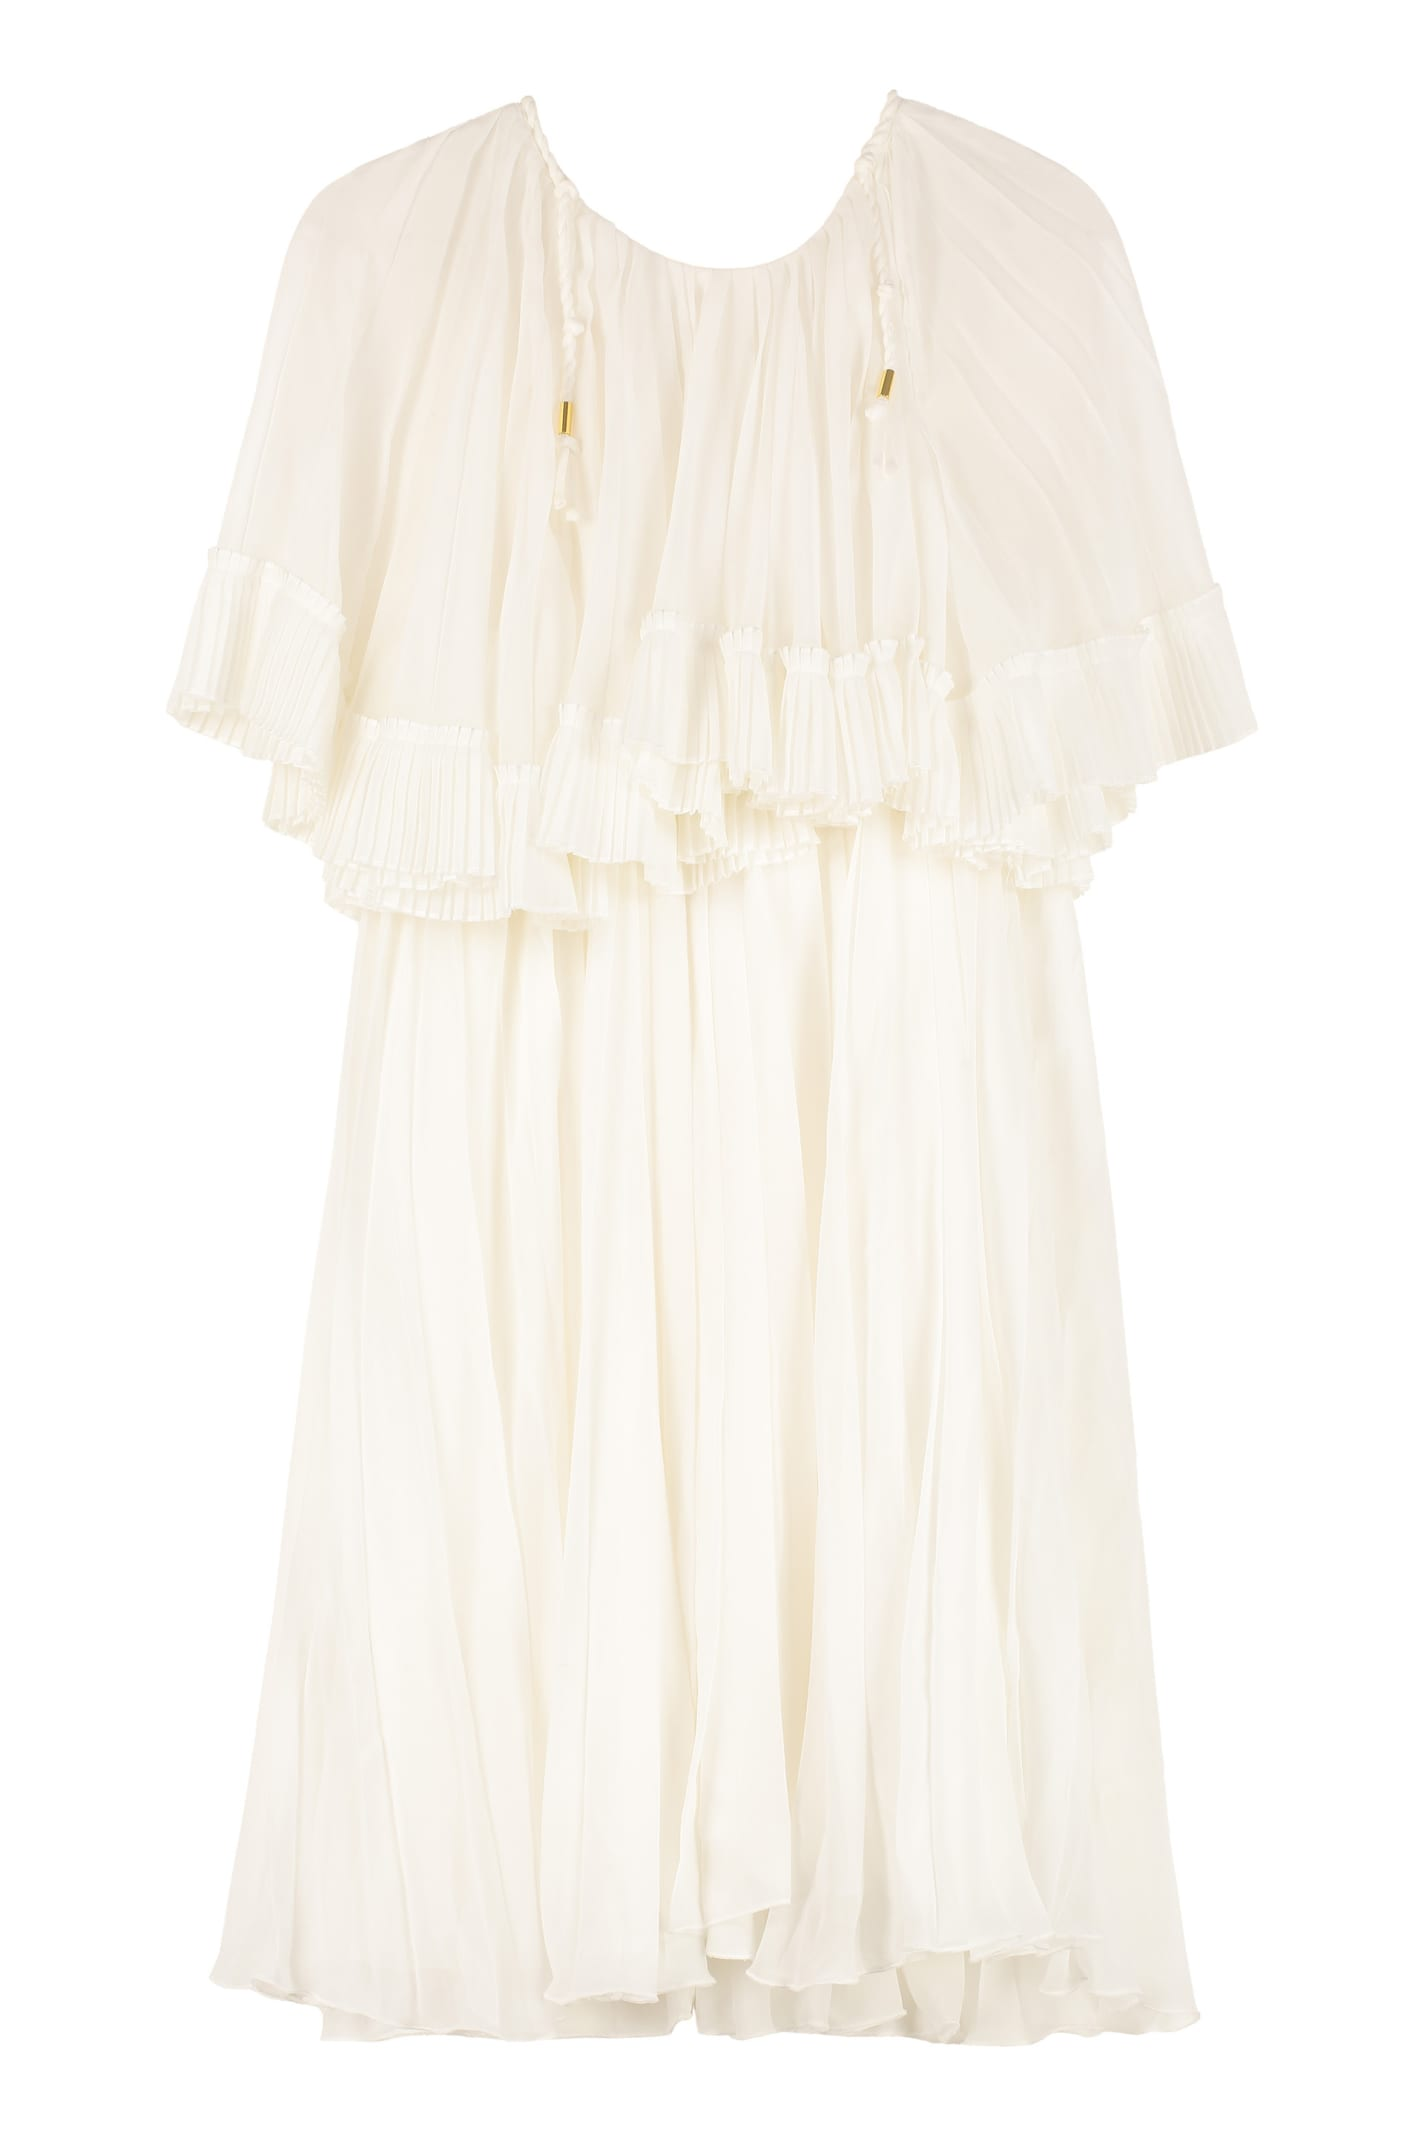 Buy Chloé Pleated Dress online, shop Chloé with free shipping